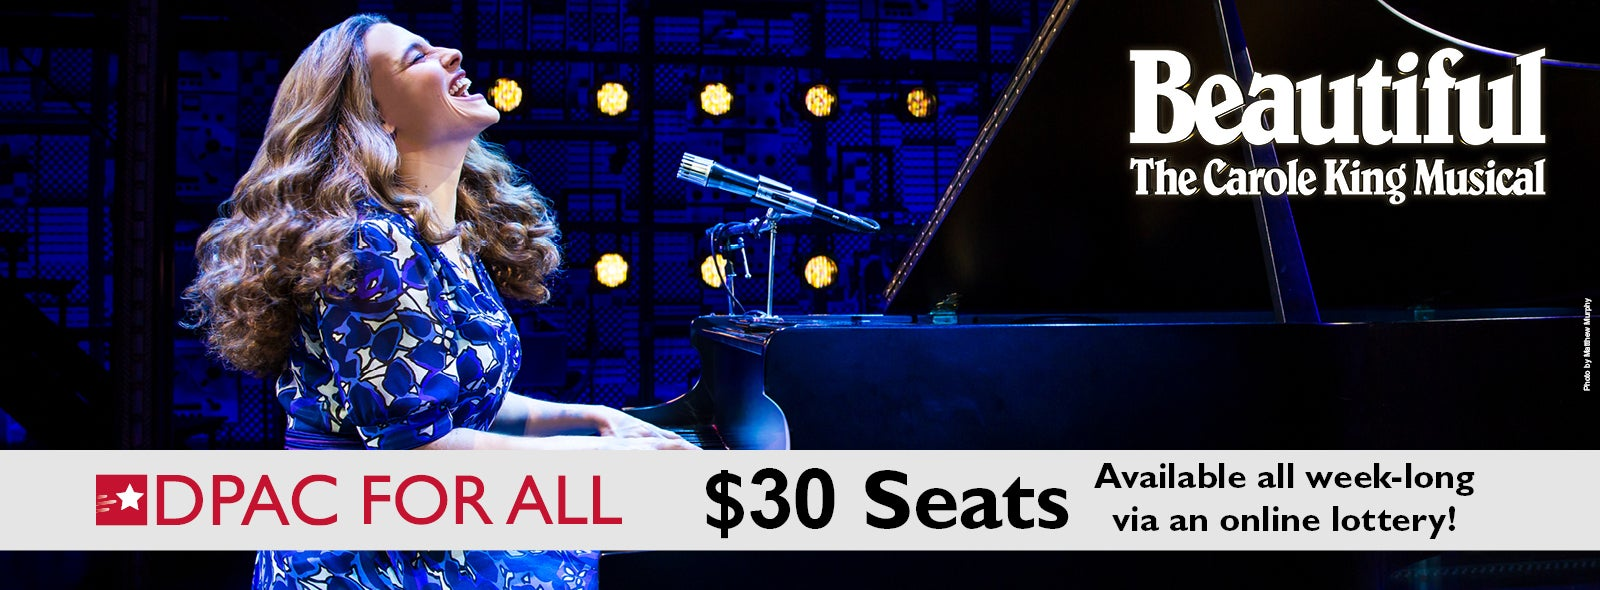 Rush Tickets for Beautiful - The Carole King Musical